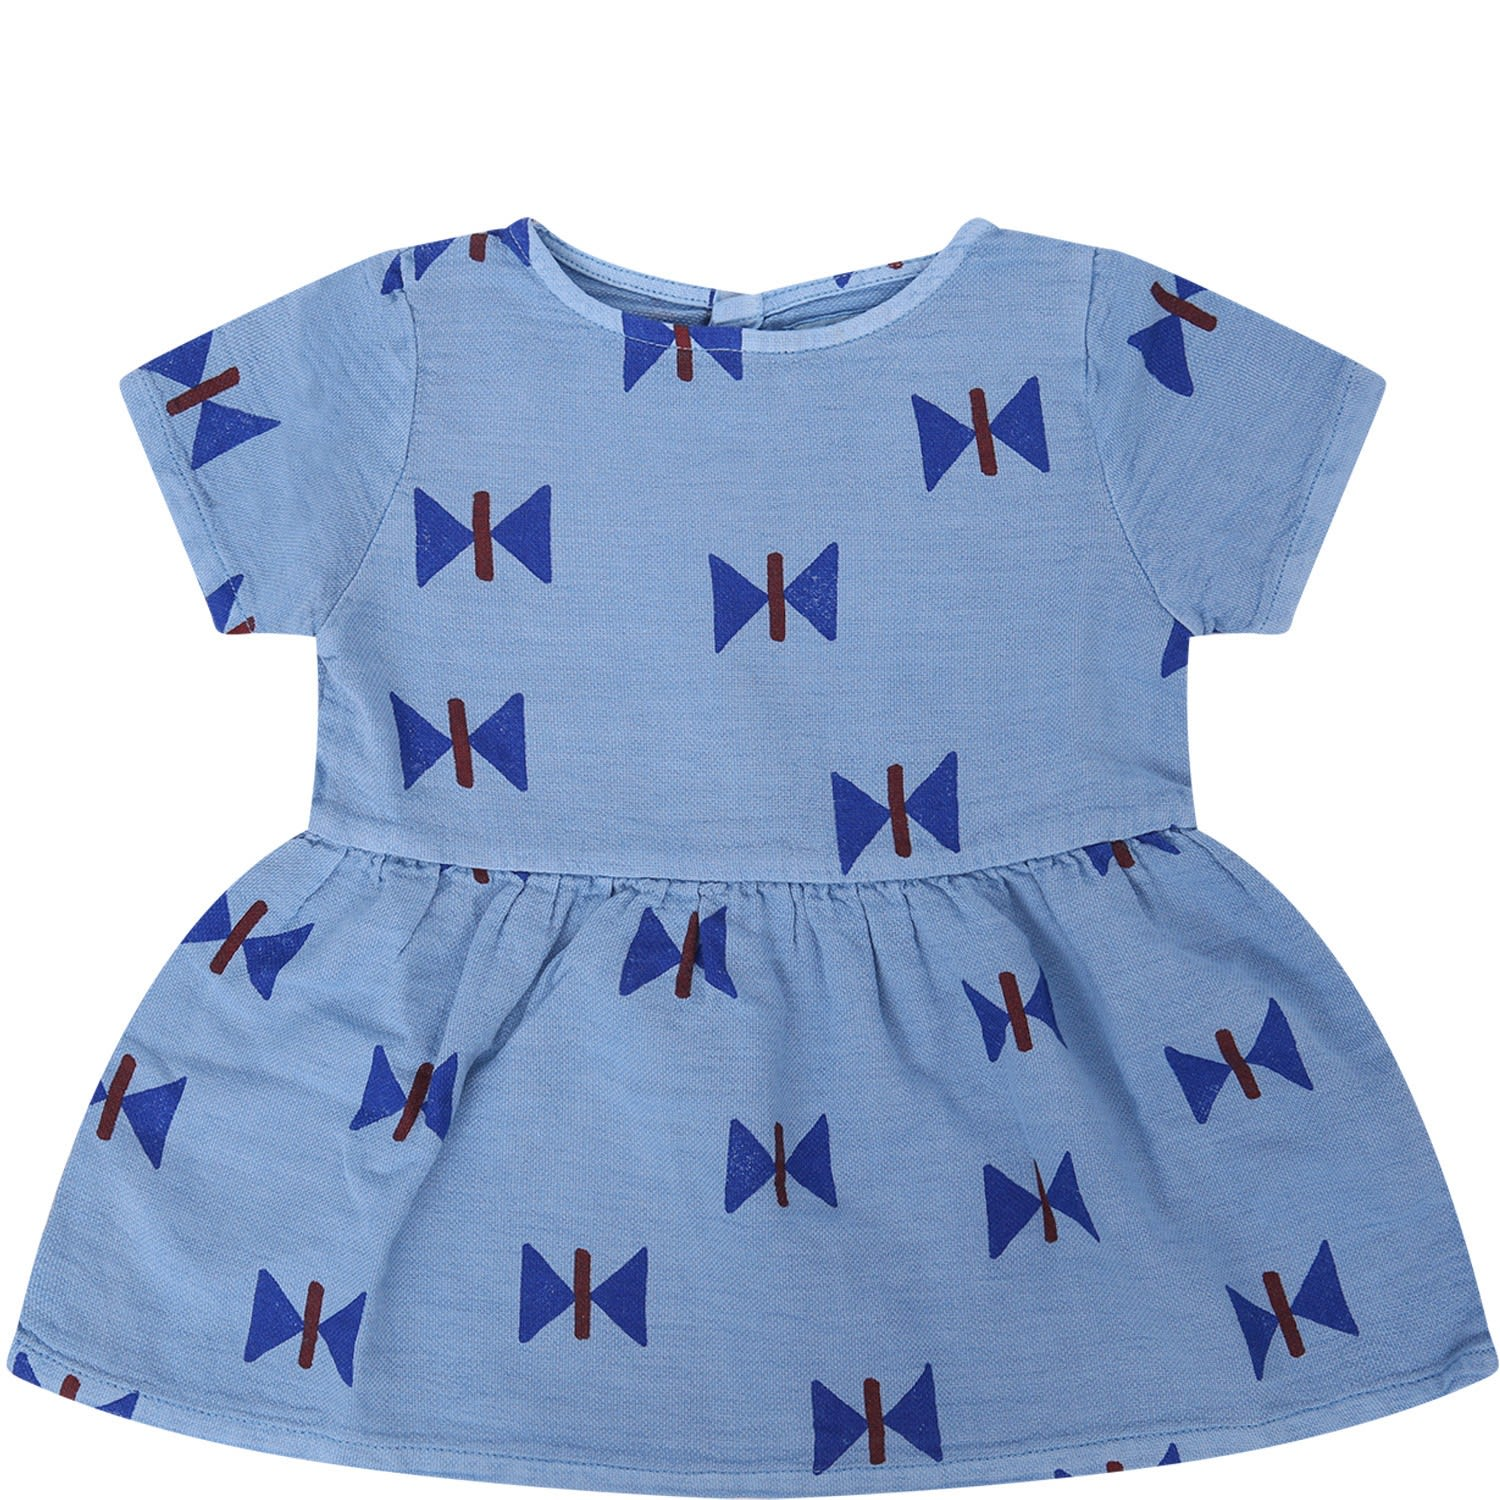 Bobo Choses Sky Blue Girl Dress With Styles Butterflies